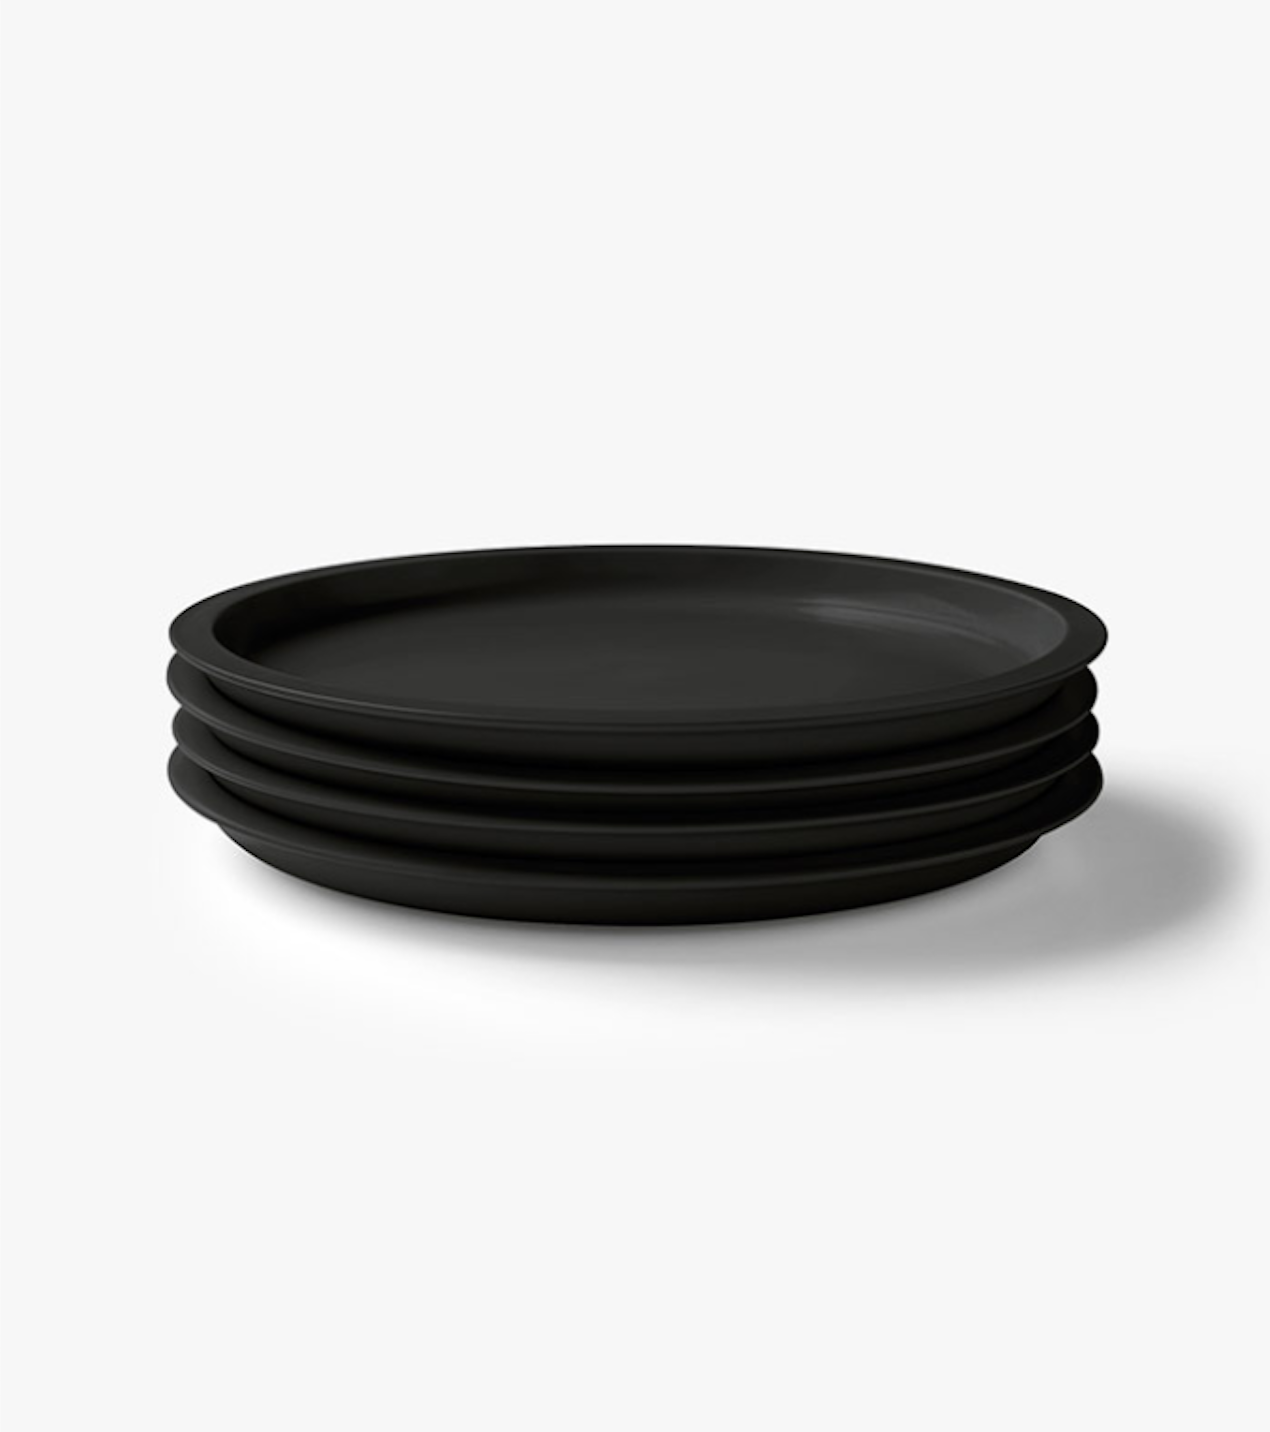 10 Easy Pieces: Dramatic Black Dinnerware